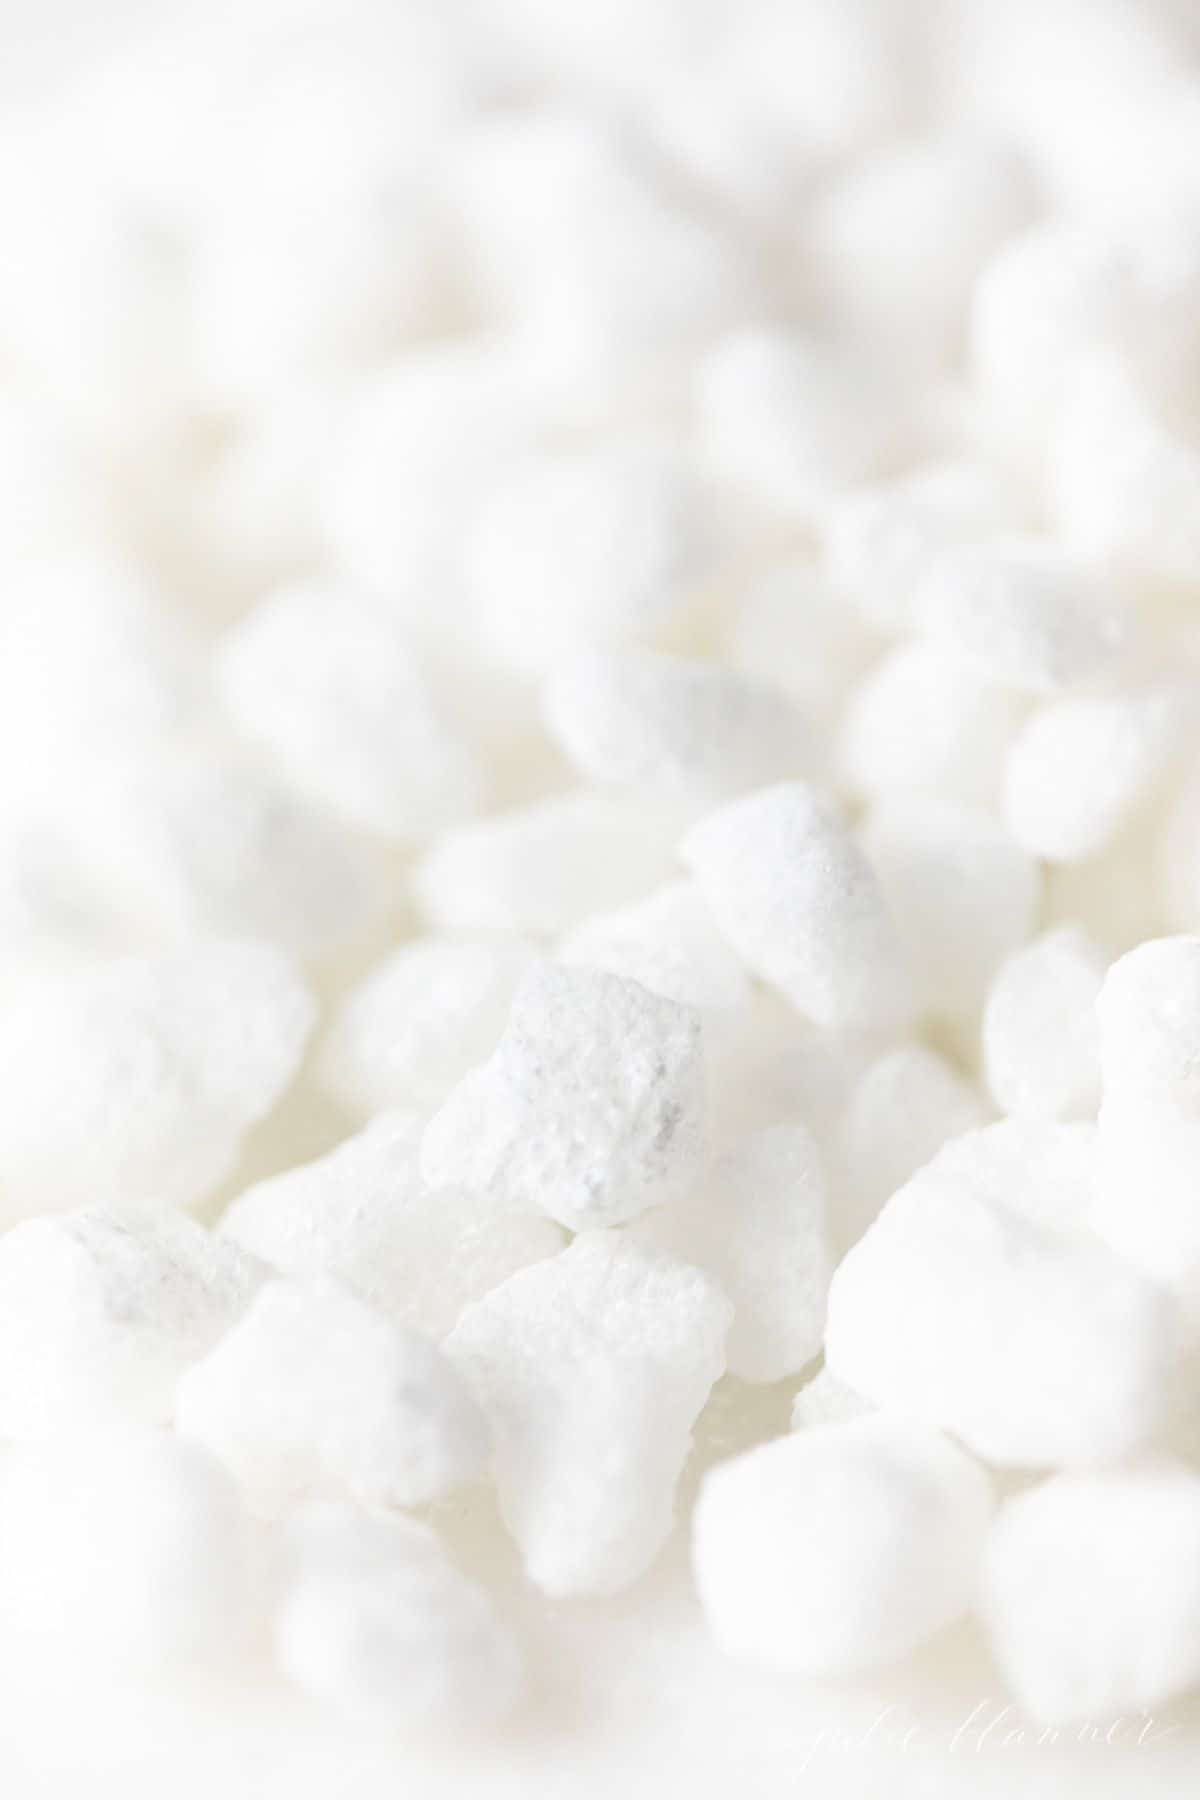 Belgian pearl sugar nibs scattered on a white surface.